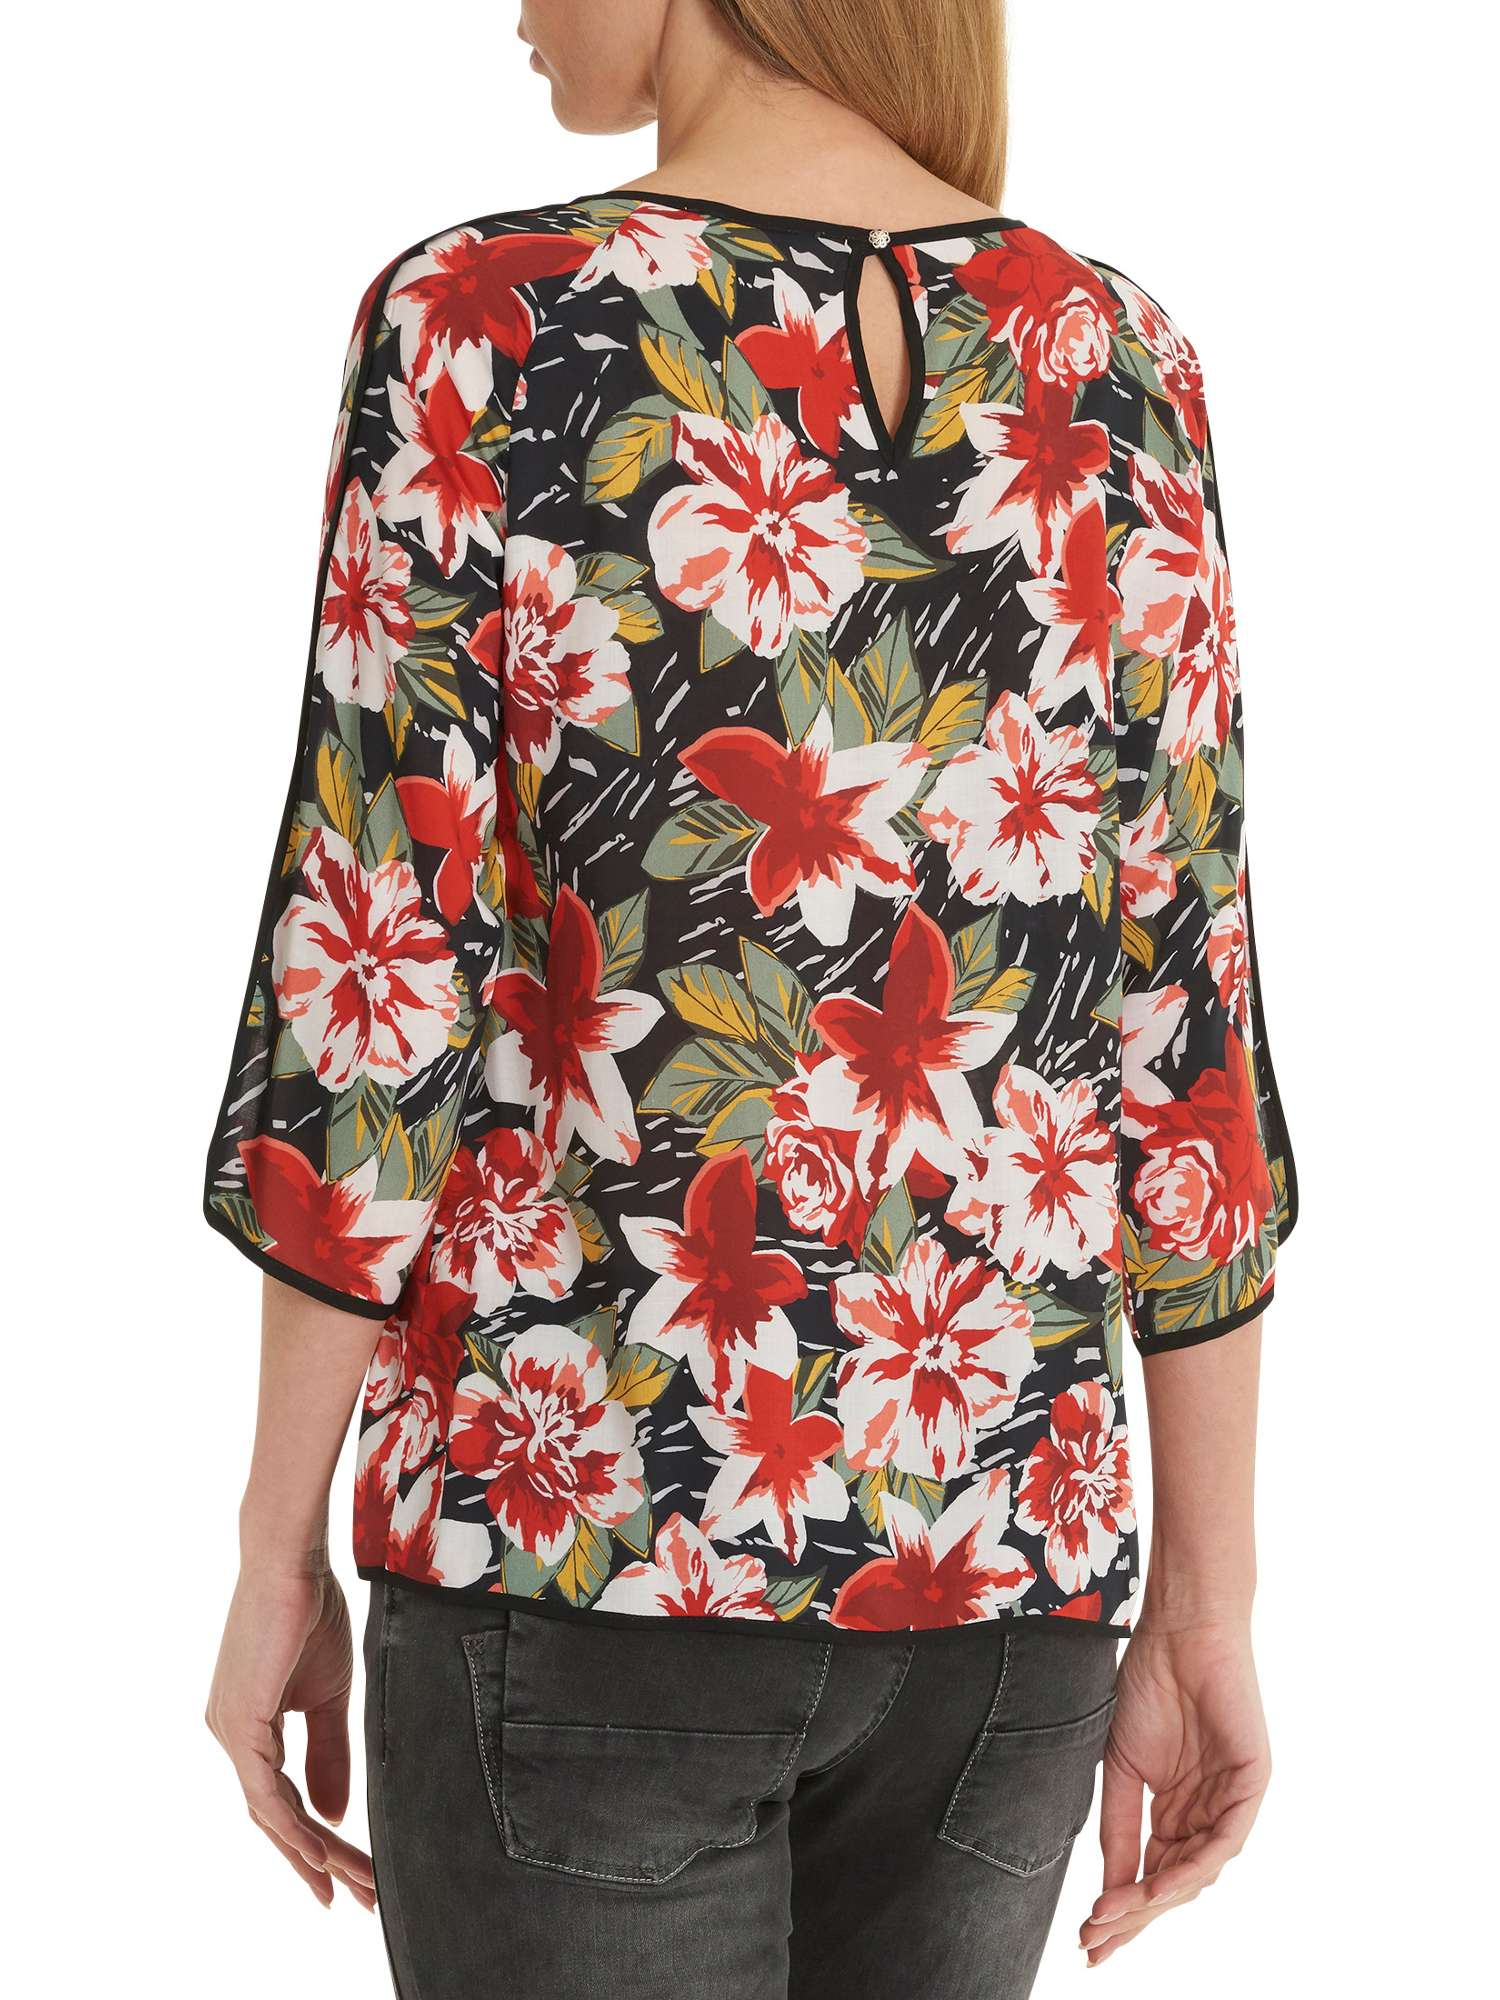 Floral Blouse Co Betty amp; Print qPwP7nxpgE